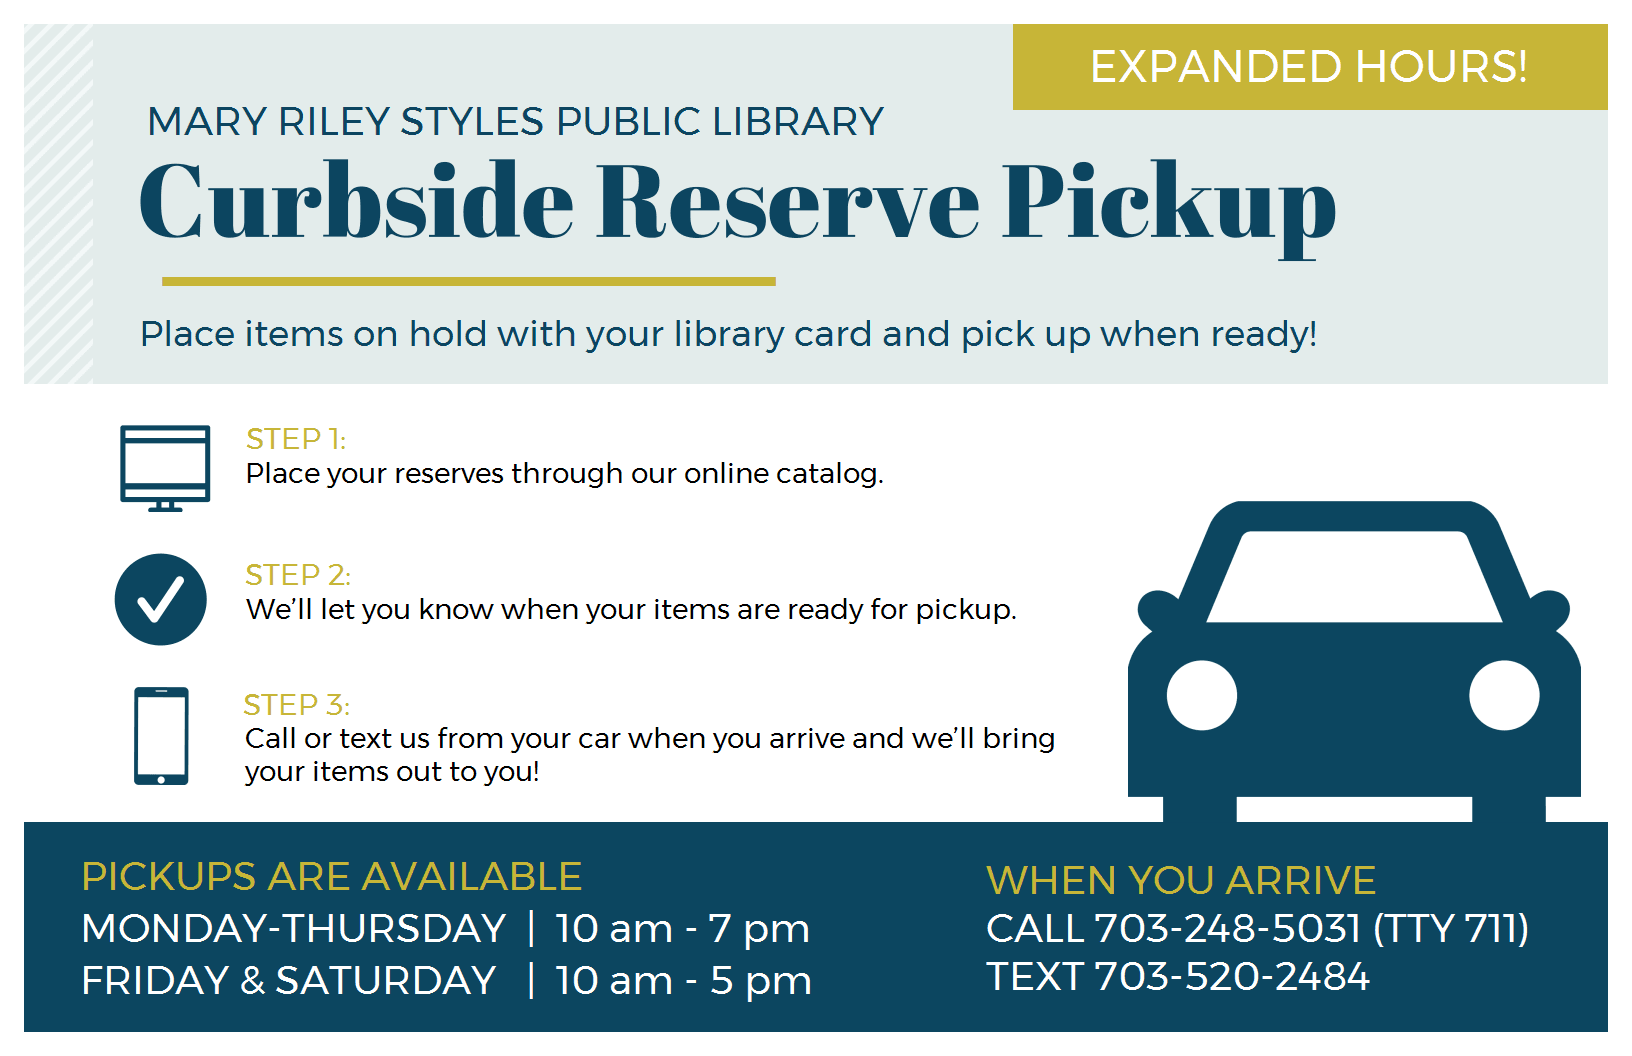 Curbside Reserve Pickup